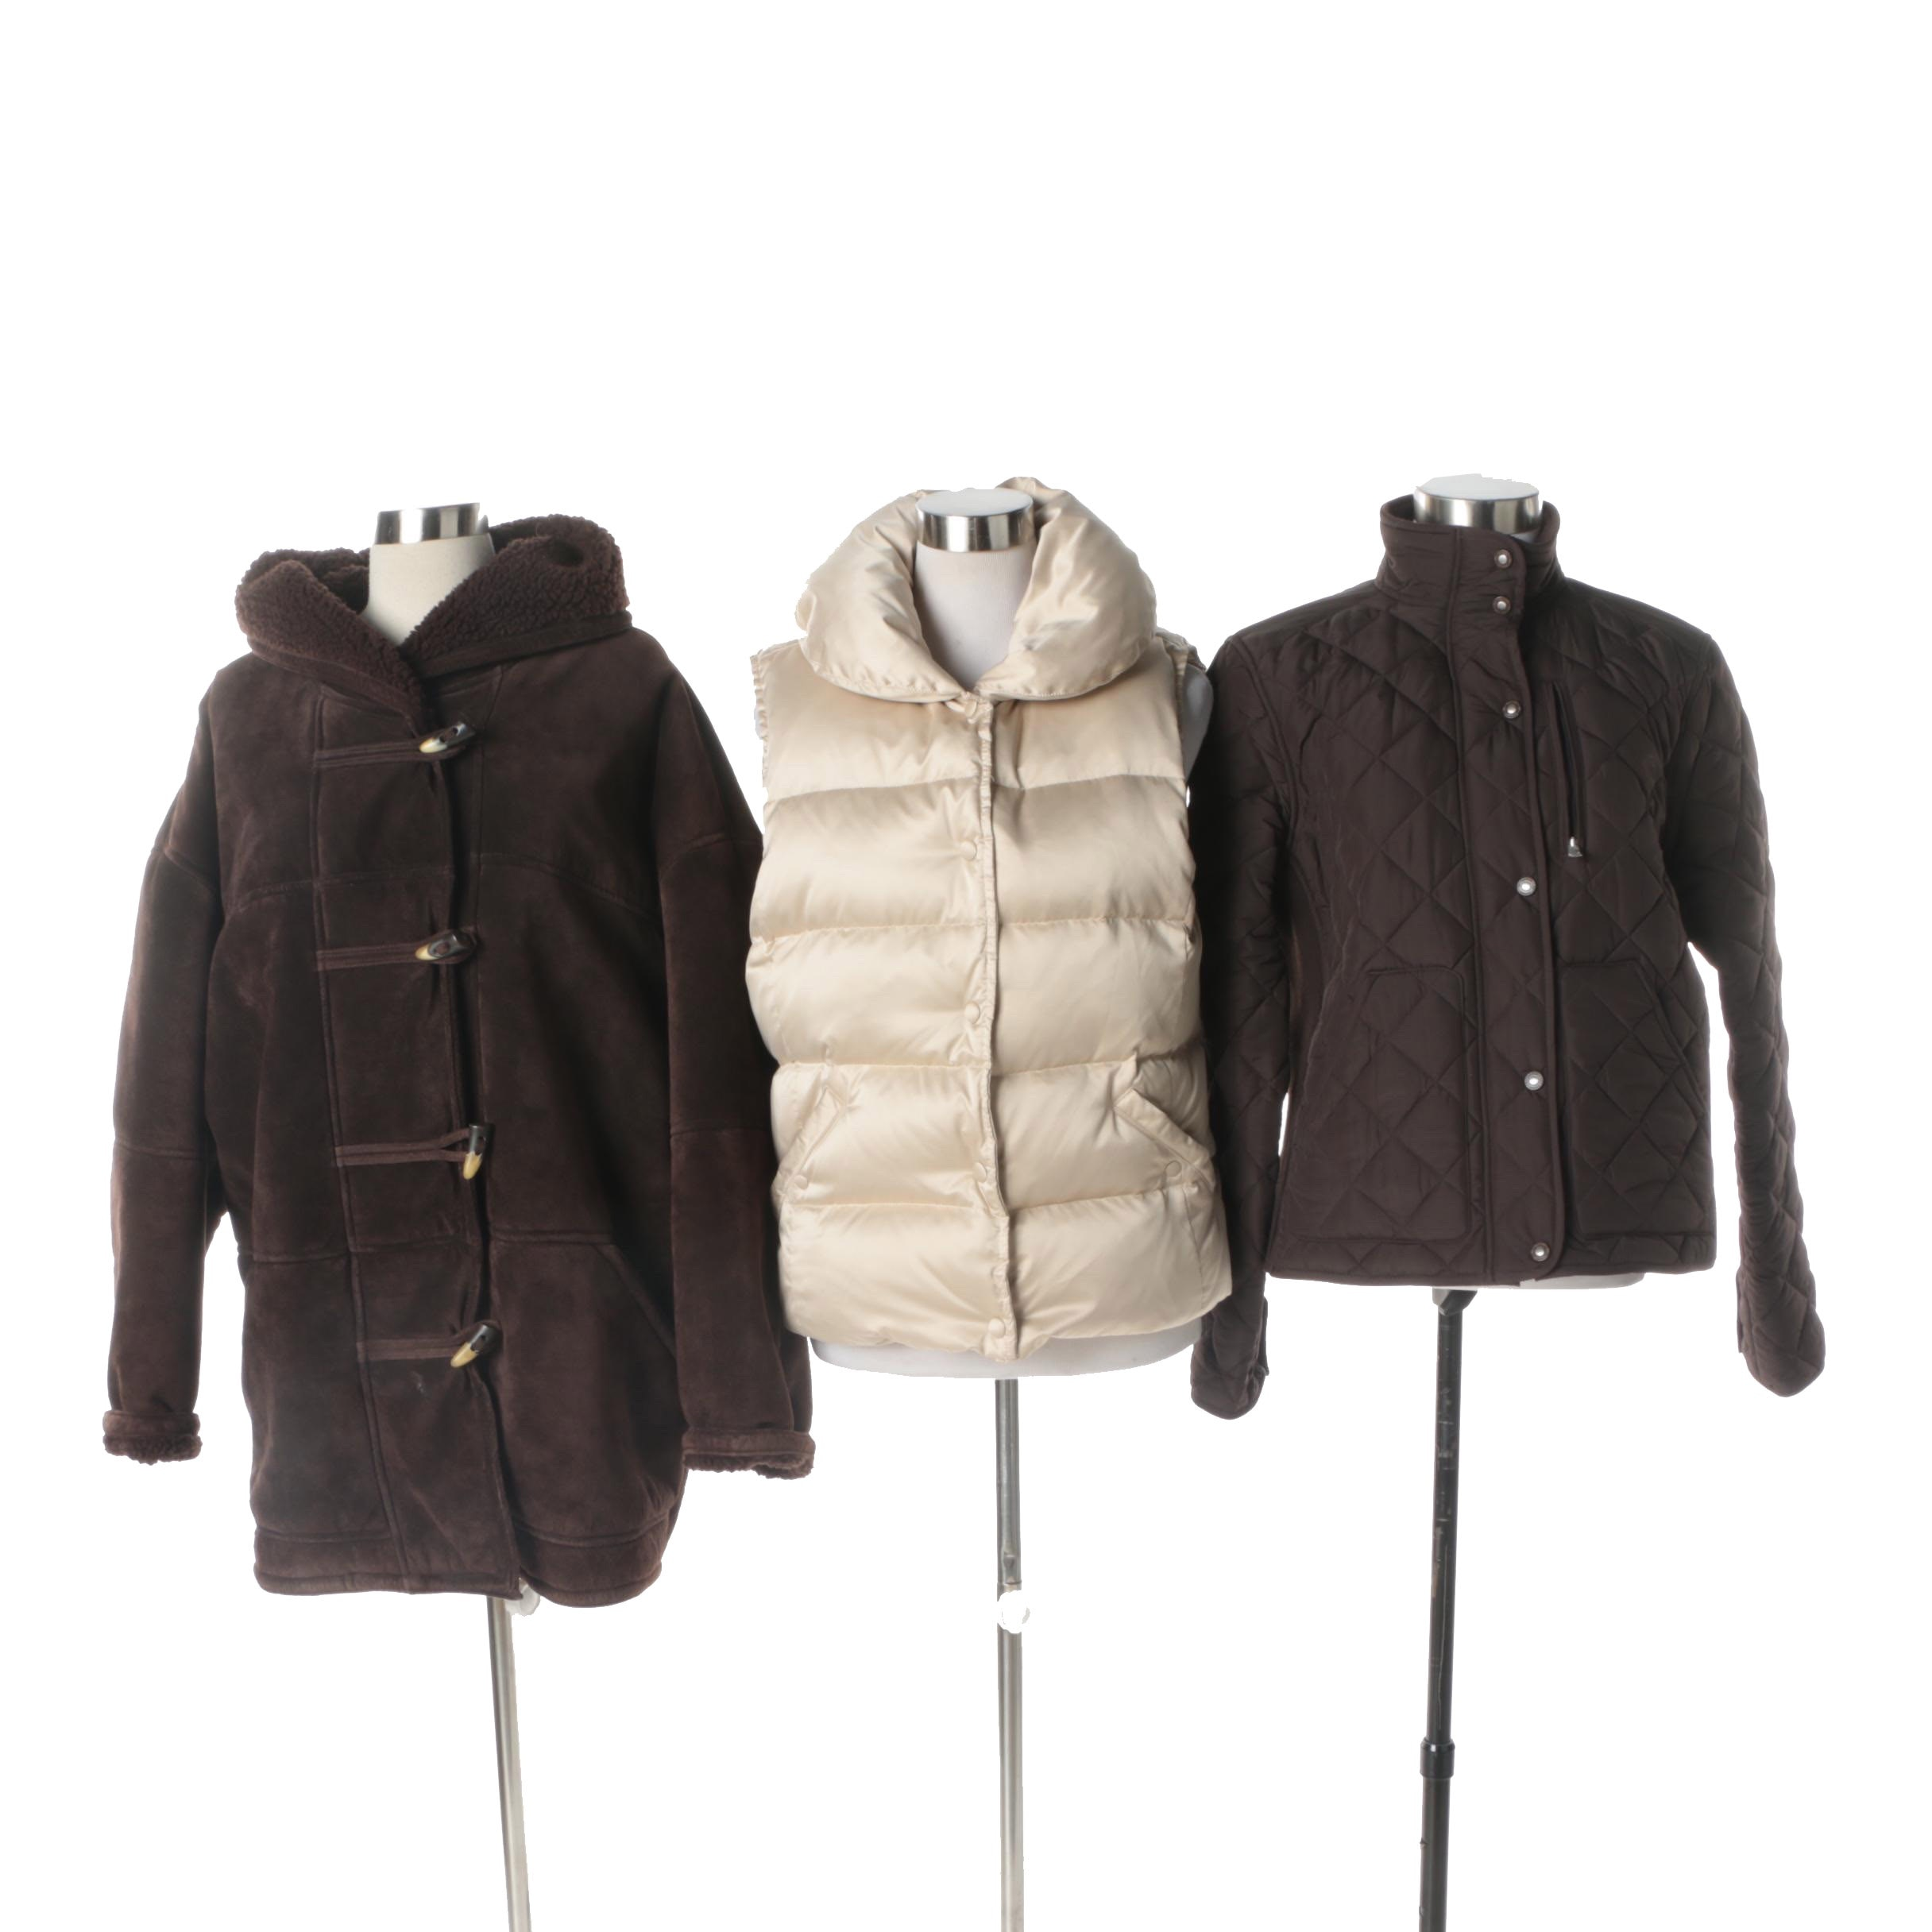 Women's Outerwear Including Ann Taylor, Lauren Ralph Lauren and Lizwear